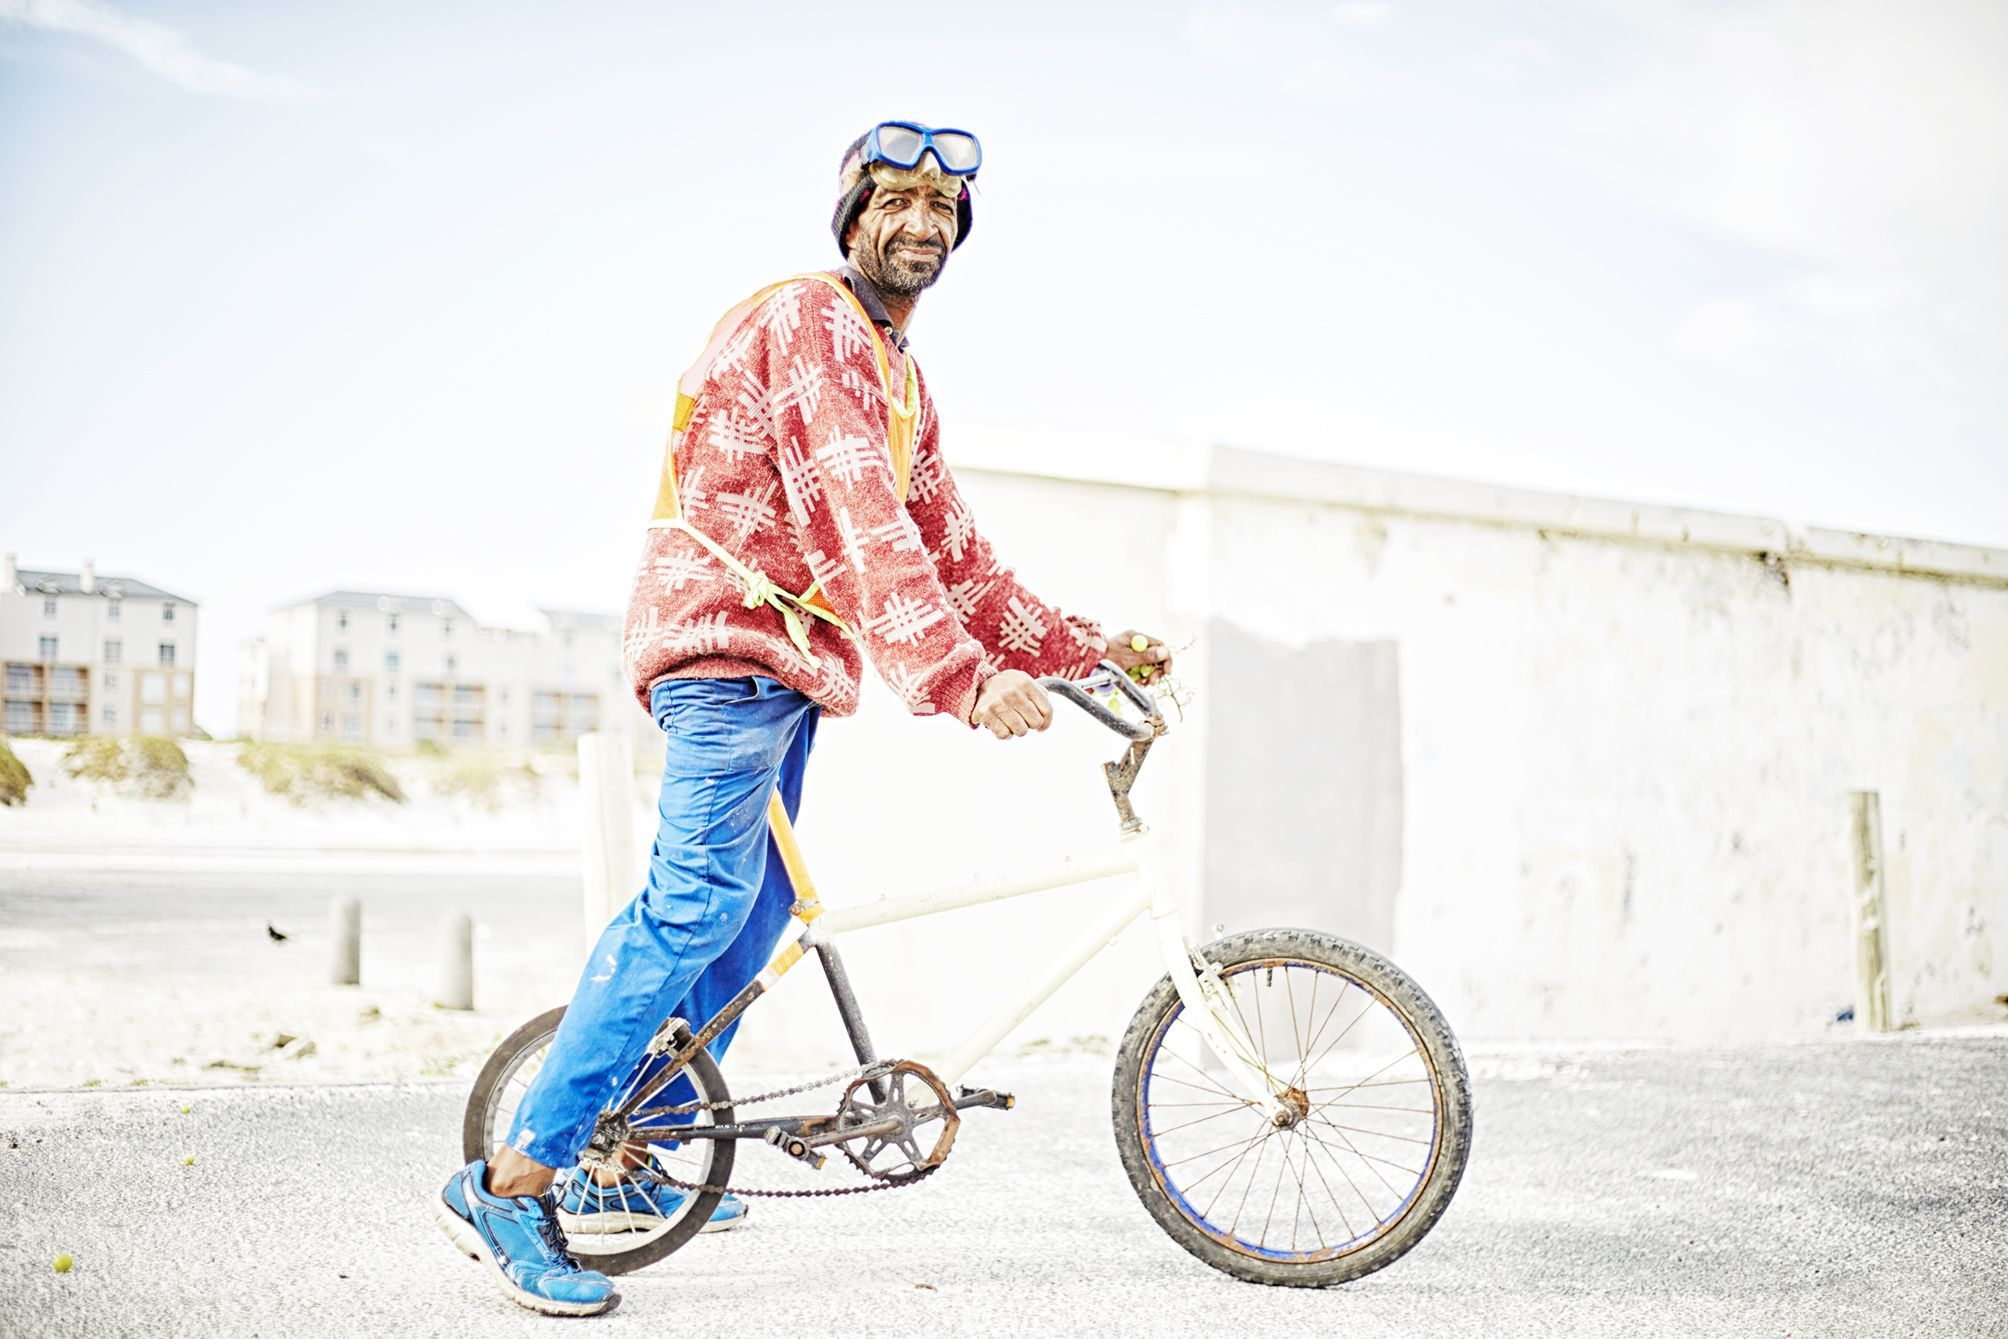 Portrait of Muizenberg's Car guard at the local kite spot sporting his bmx bike, goggles and some grapes.